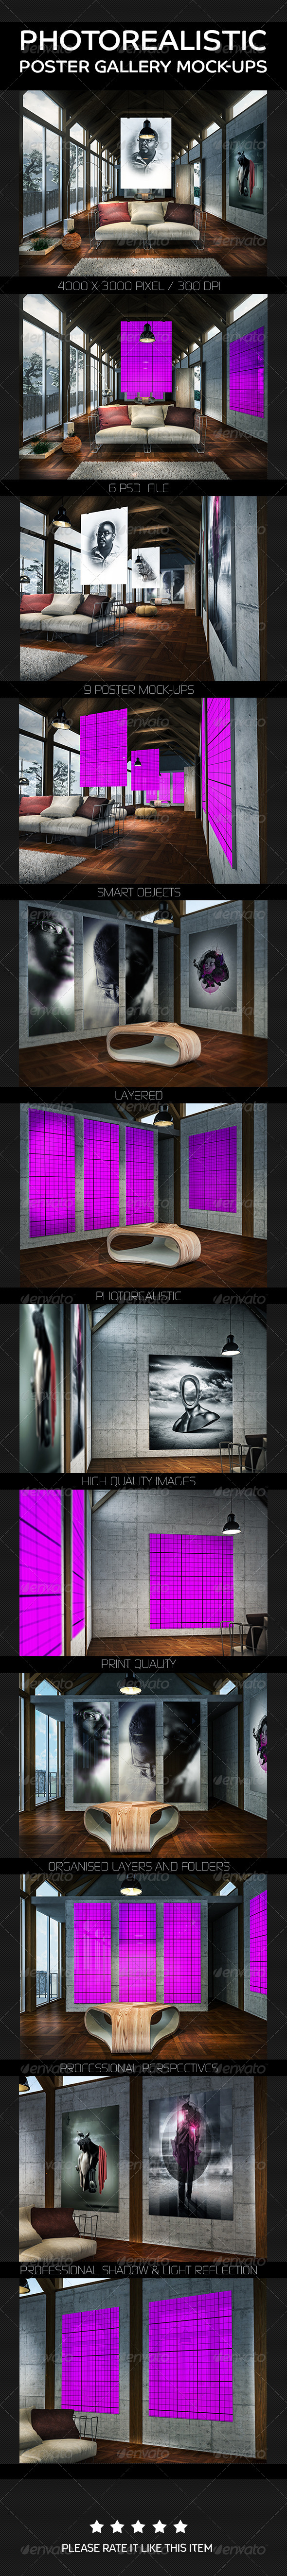 GraphicRiver Photorealistic Poster Gallery Mock-Ups 8012885